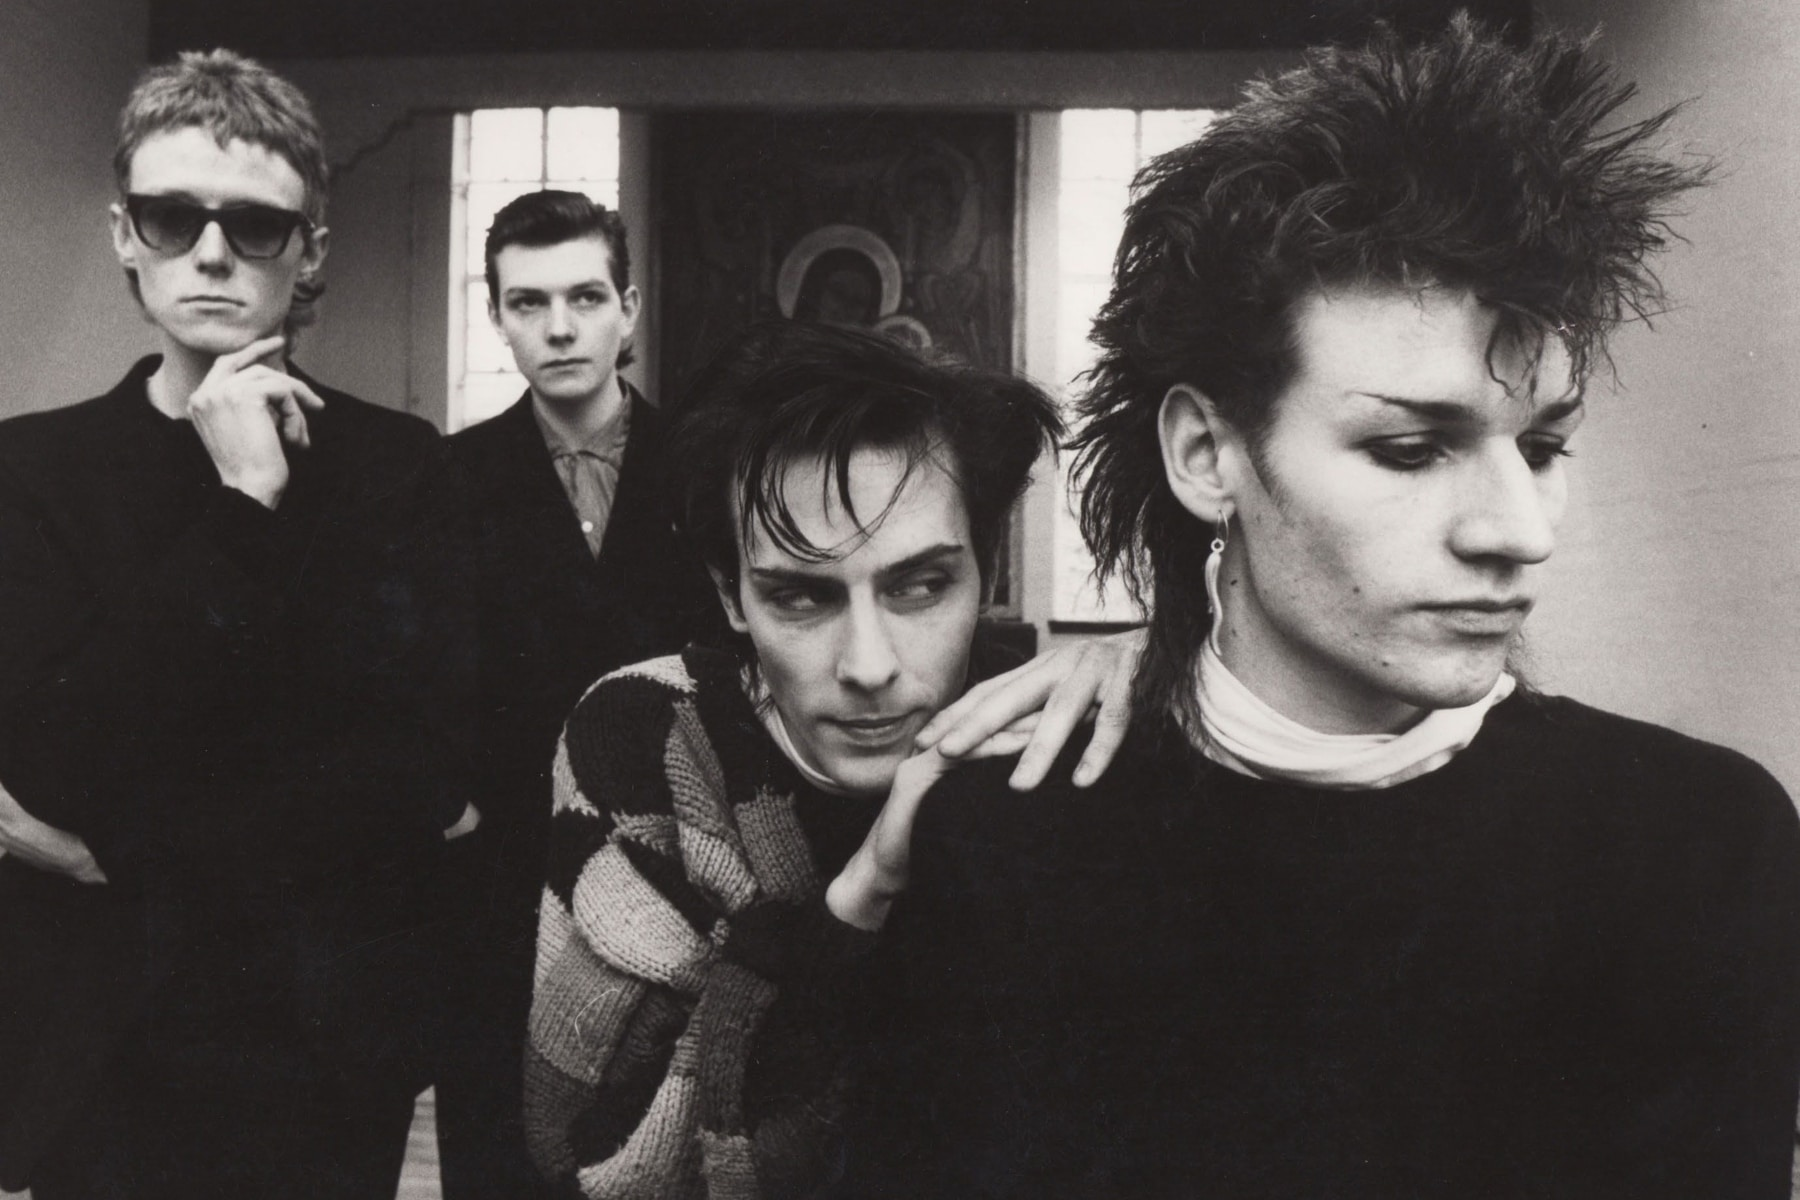 Bauhaus and the Alternative Gothic Subculture